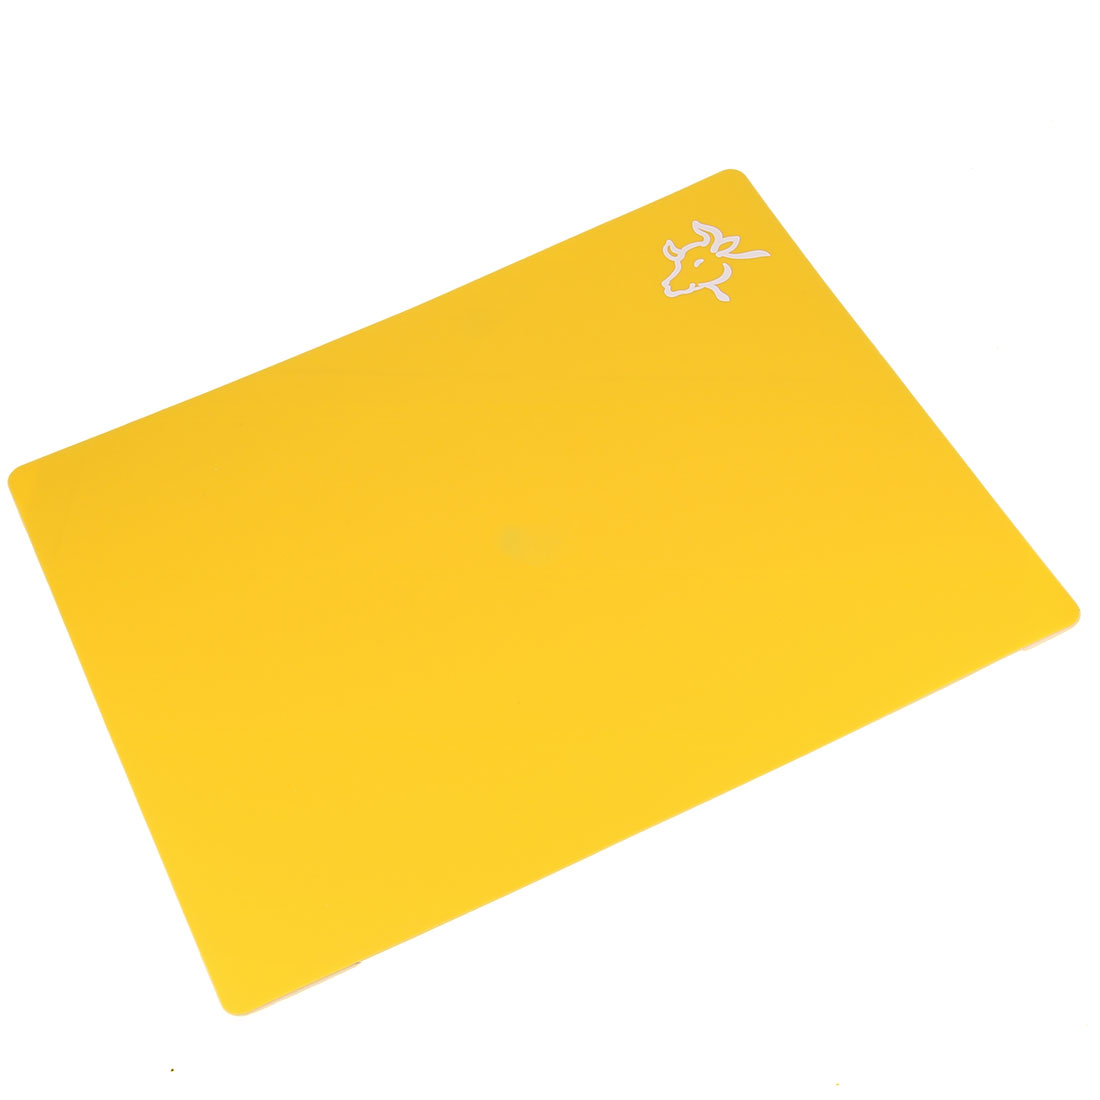 Kitchen Antislip Plastic Chesse Fruit Dessert Chopping Cutting Board Yellow